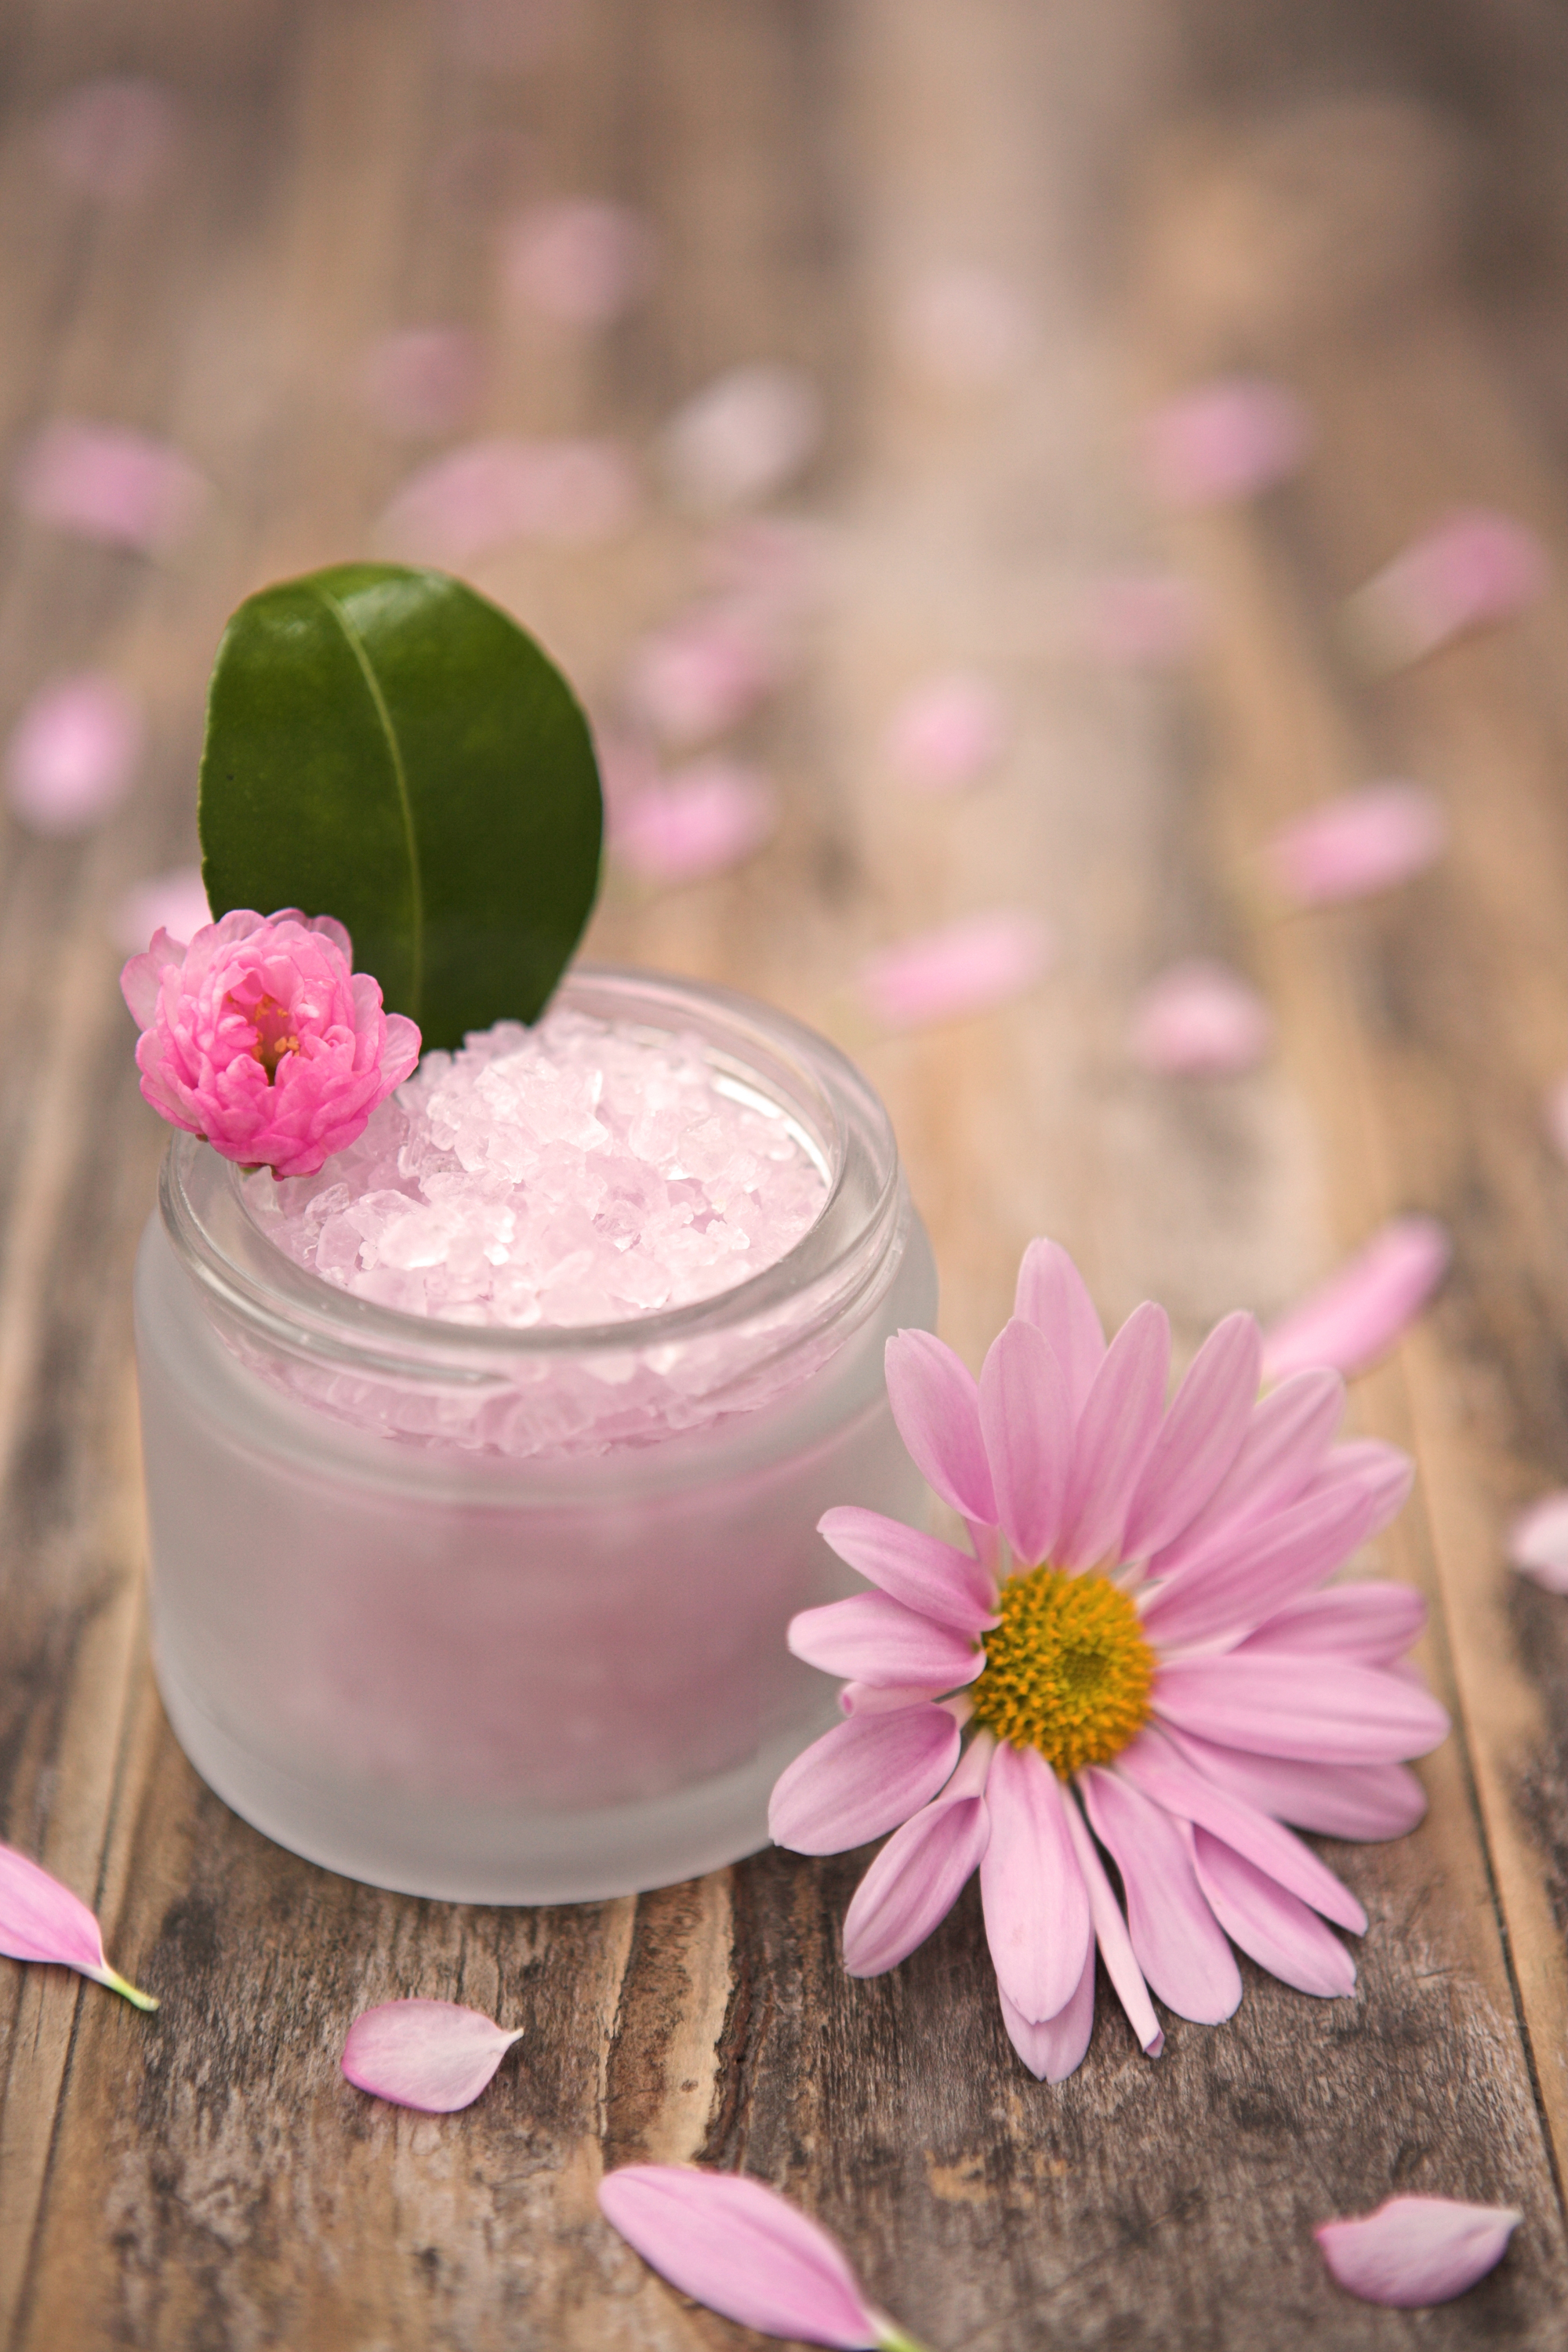 jar with flower for natural beauty recipes